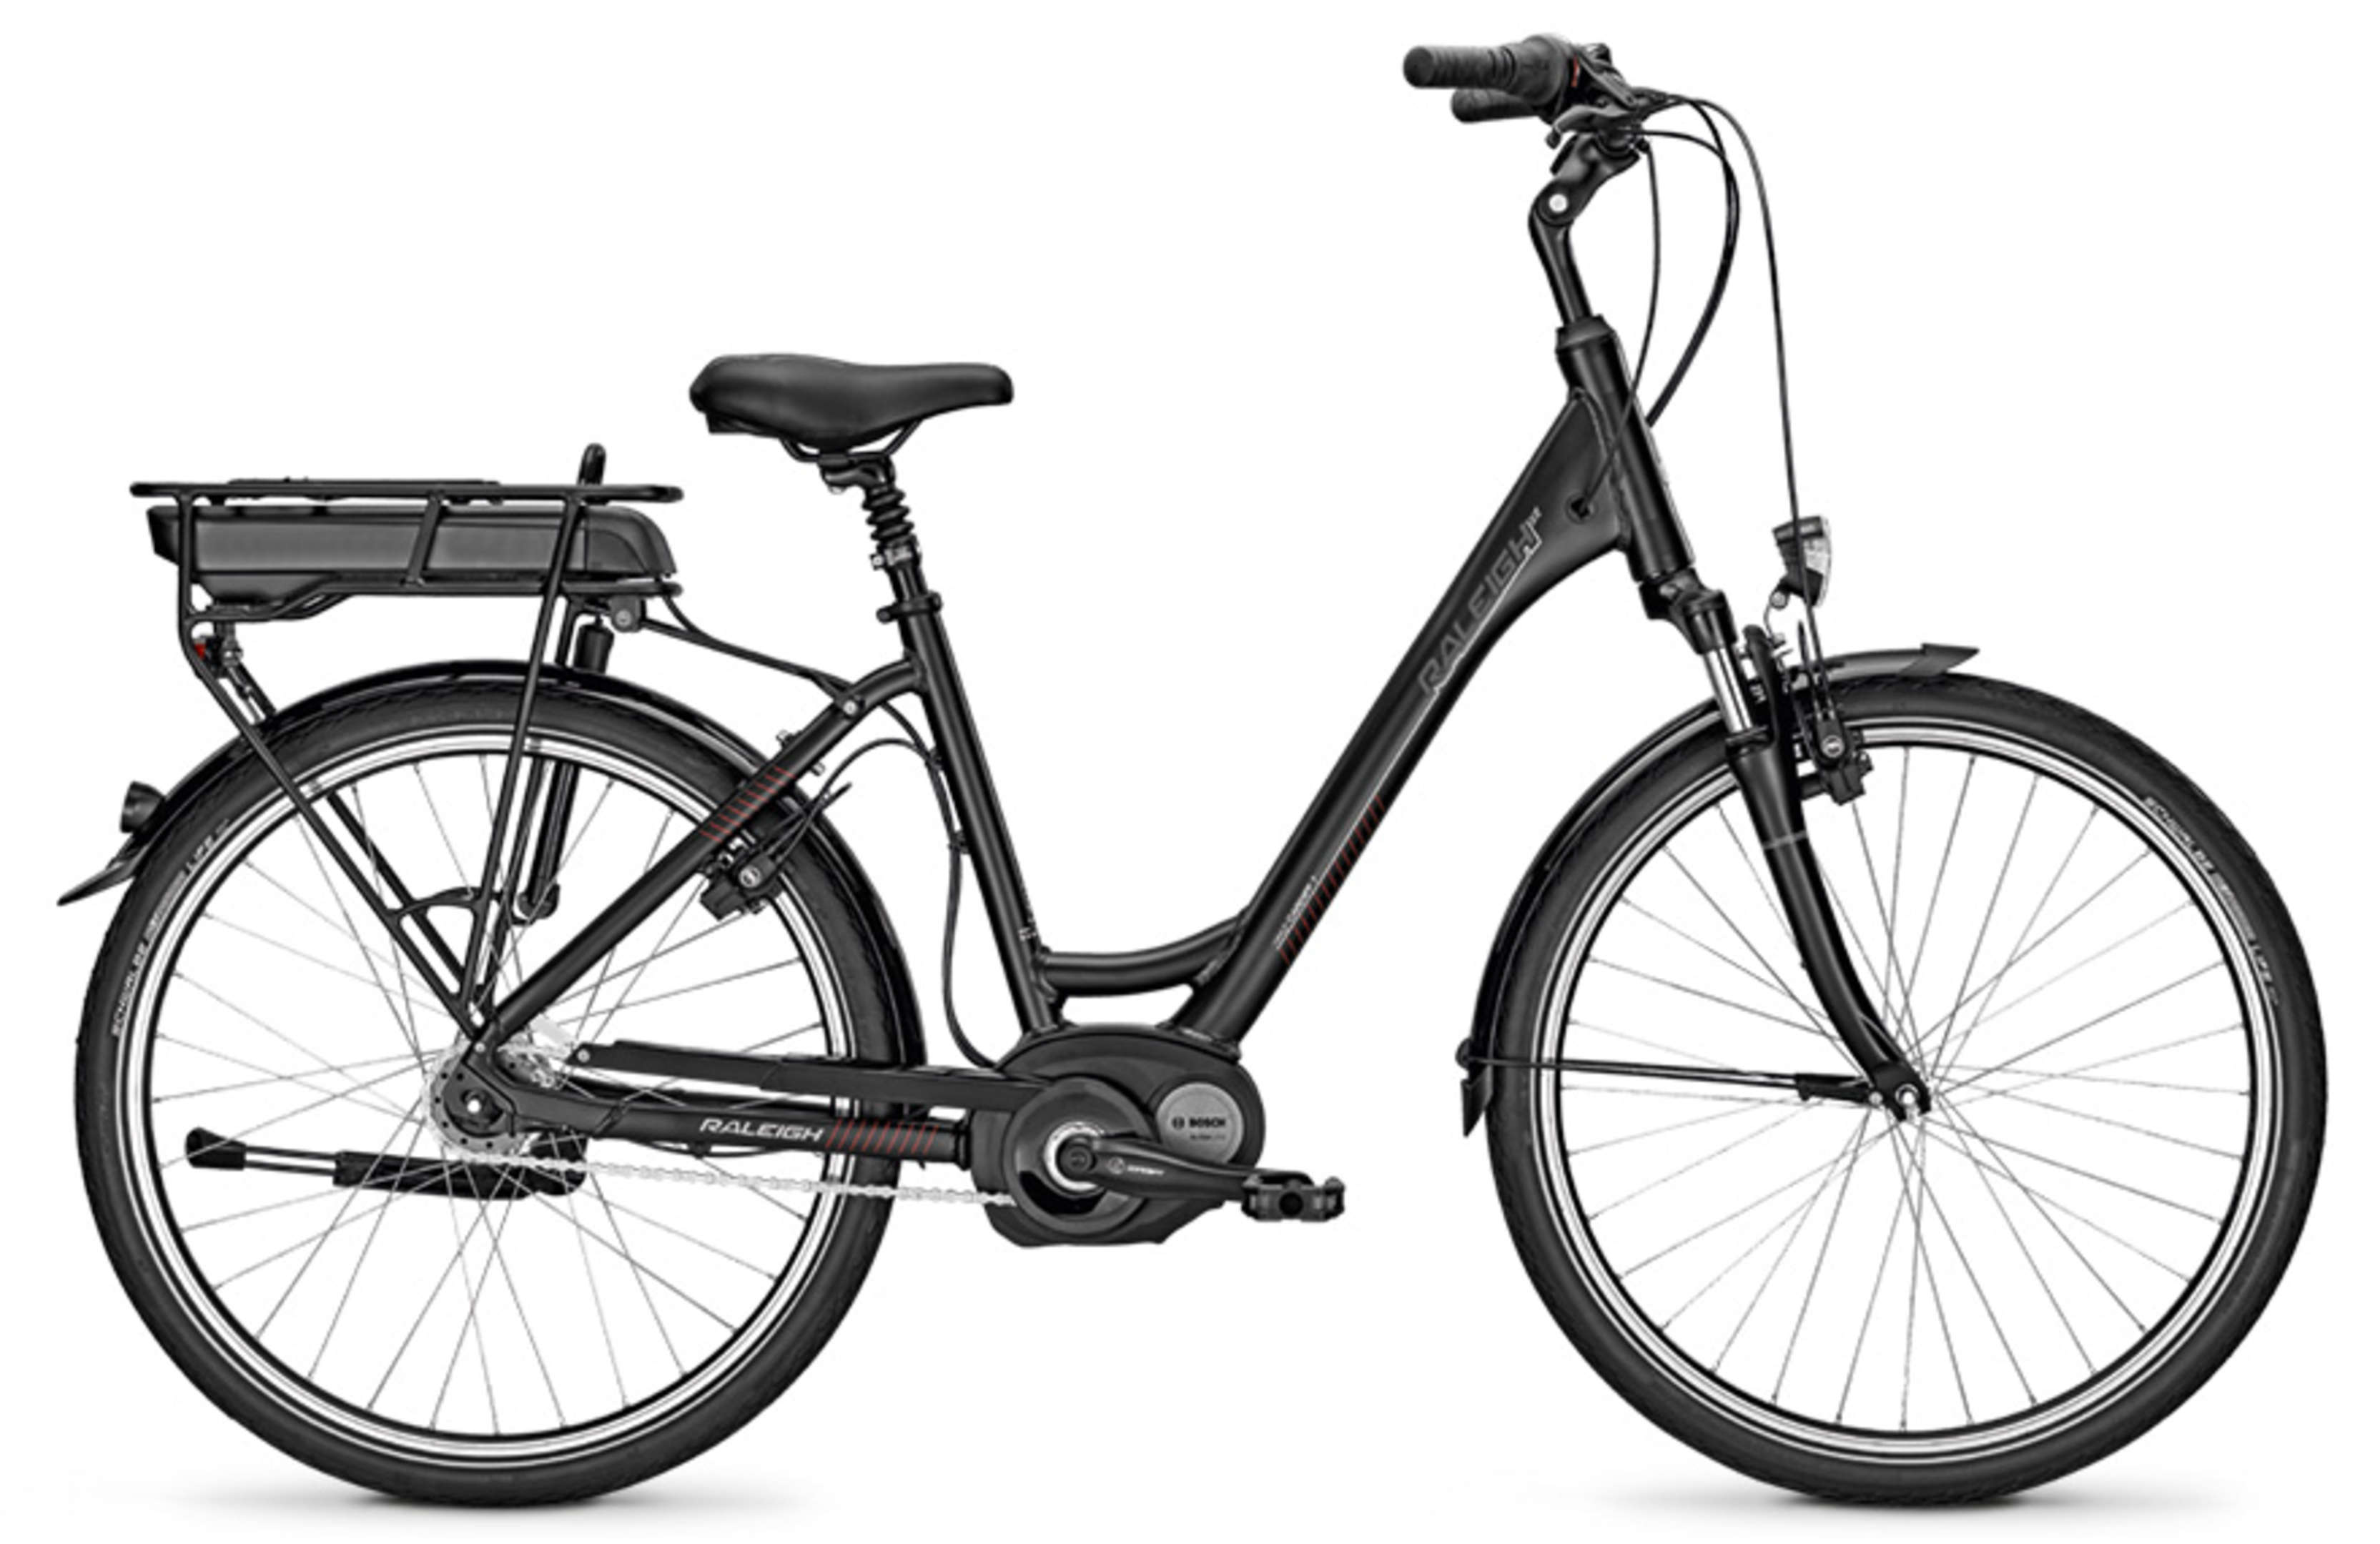 raleigh e bike cardiff 7 hs 7g 11 1ah 36v eurorad. Black Bedroom Furniture Sets. Home Design Ideas